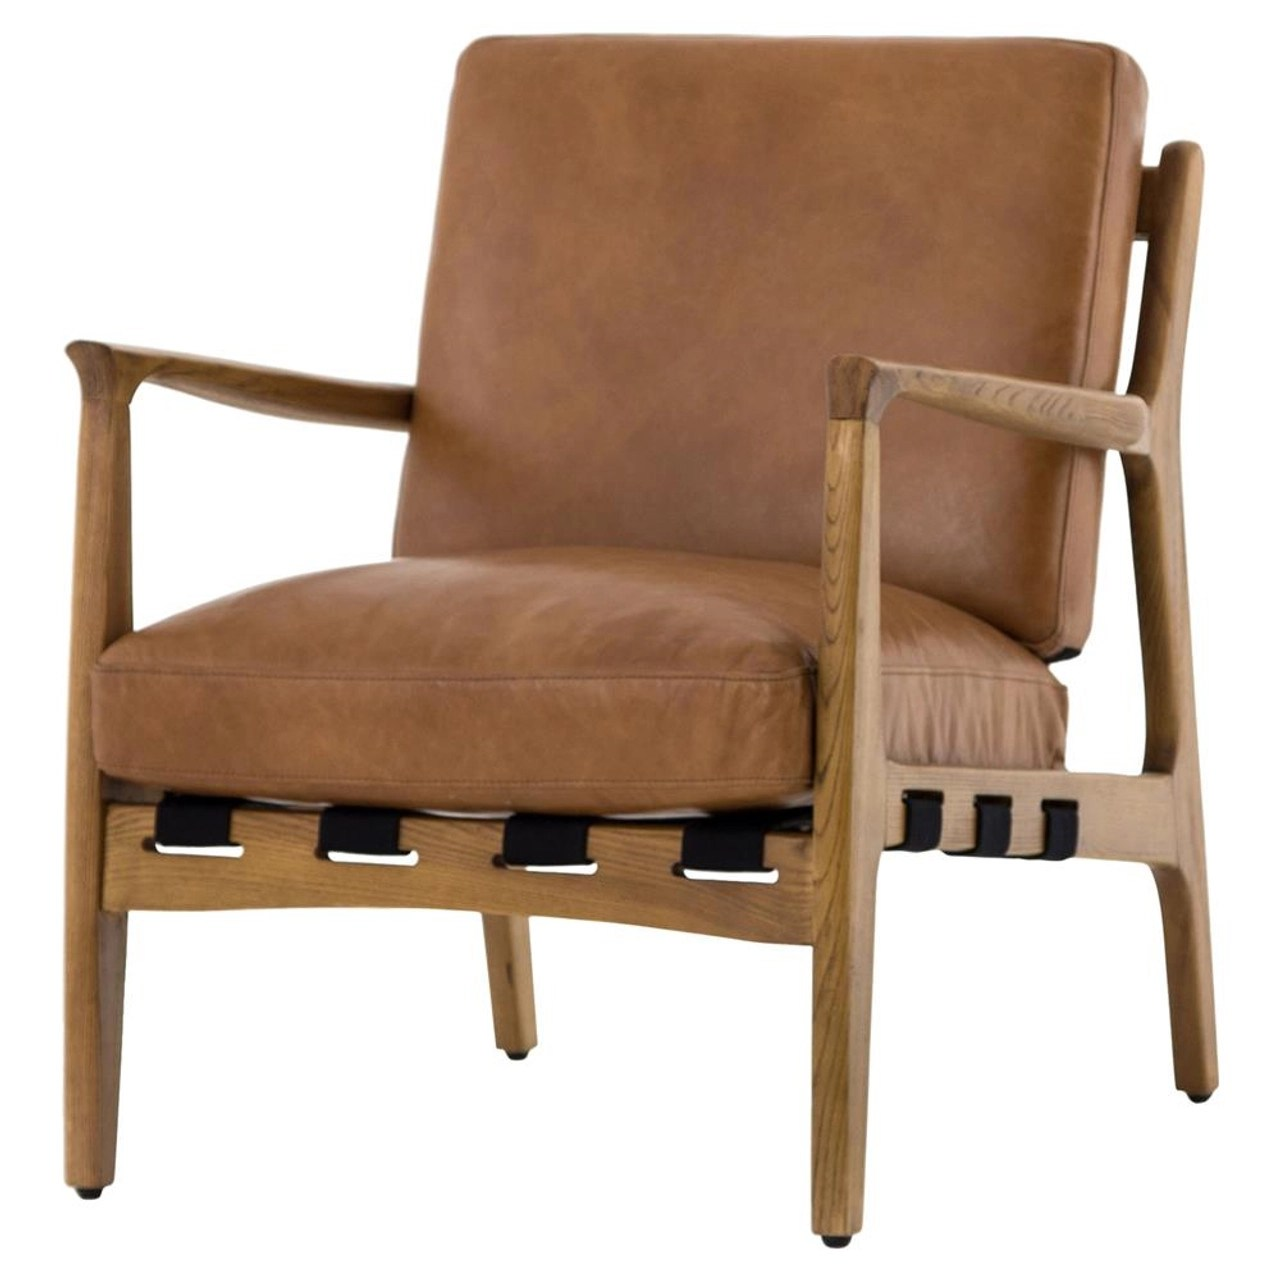 Silas Mid Century Modern Tan Leather Arm Chairs Zin Home